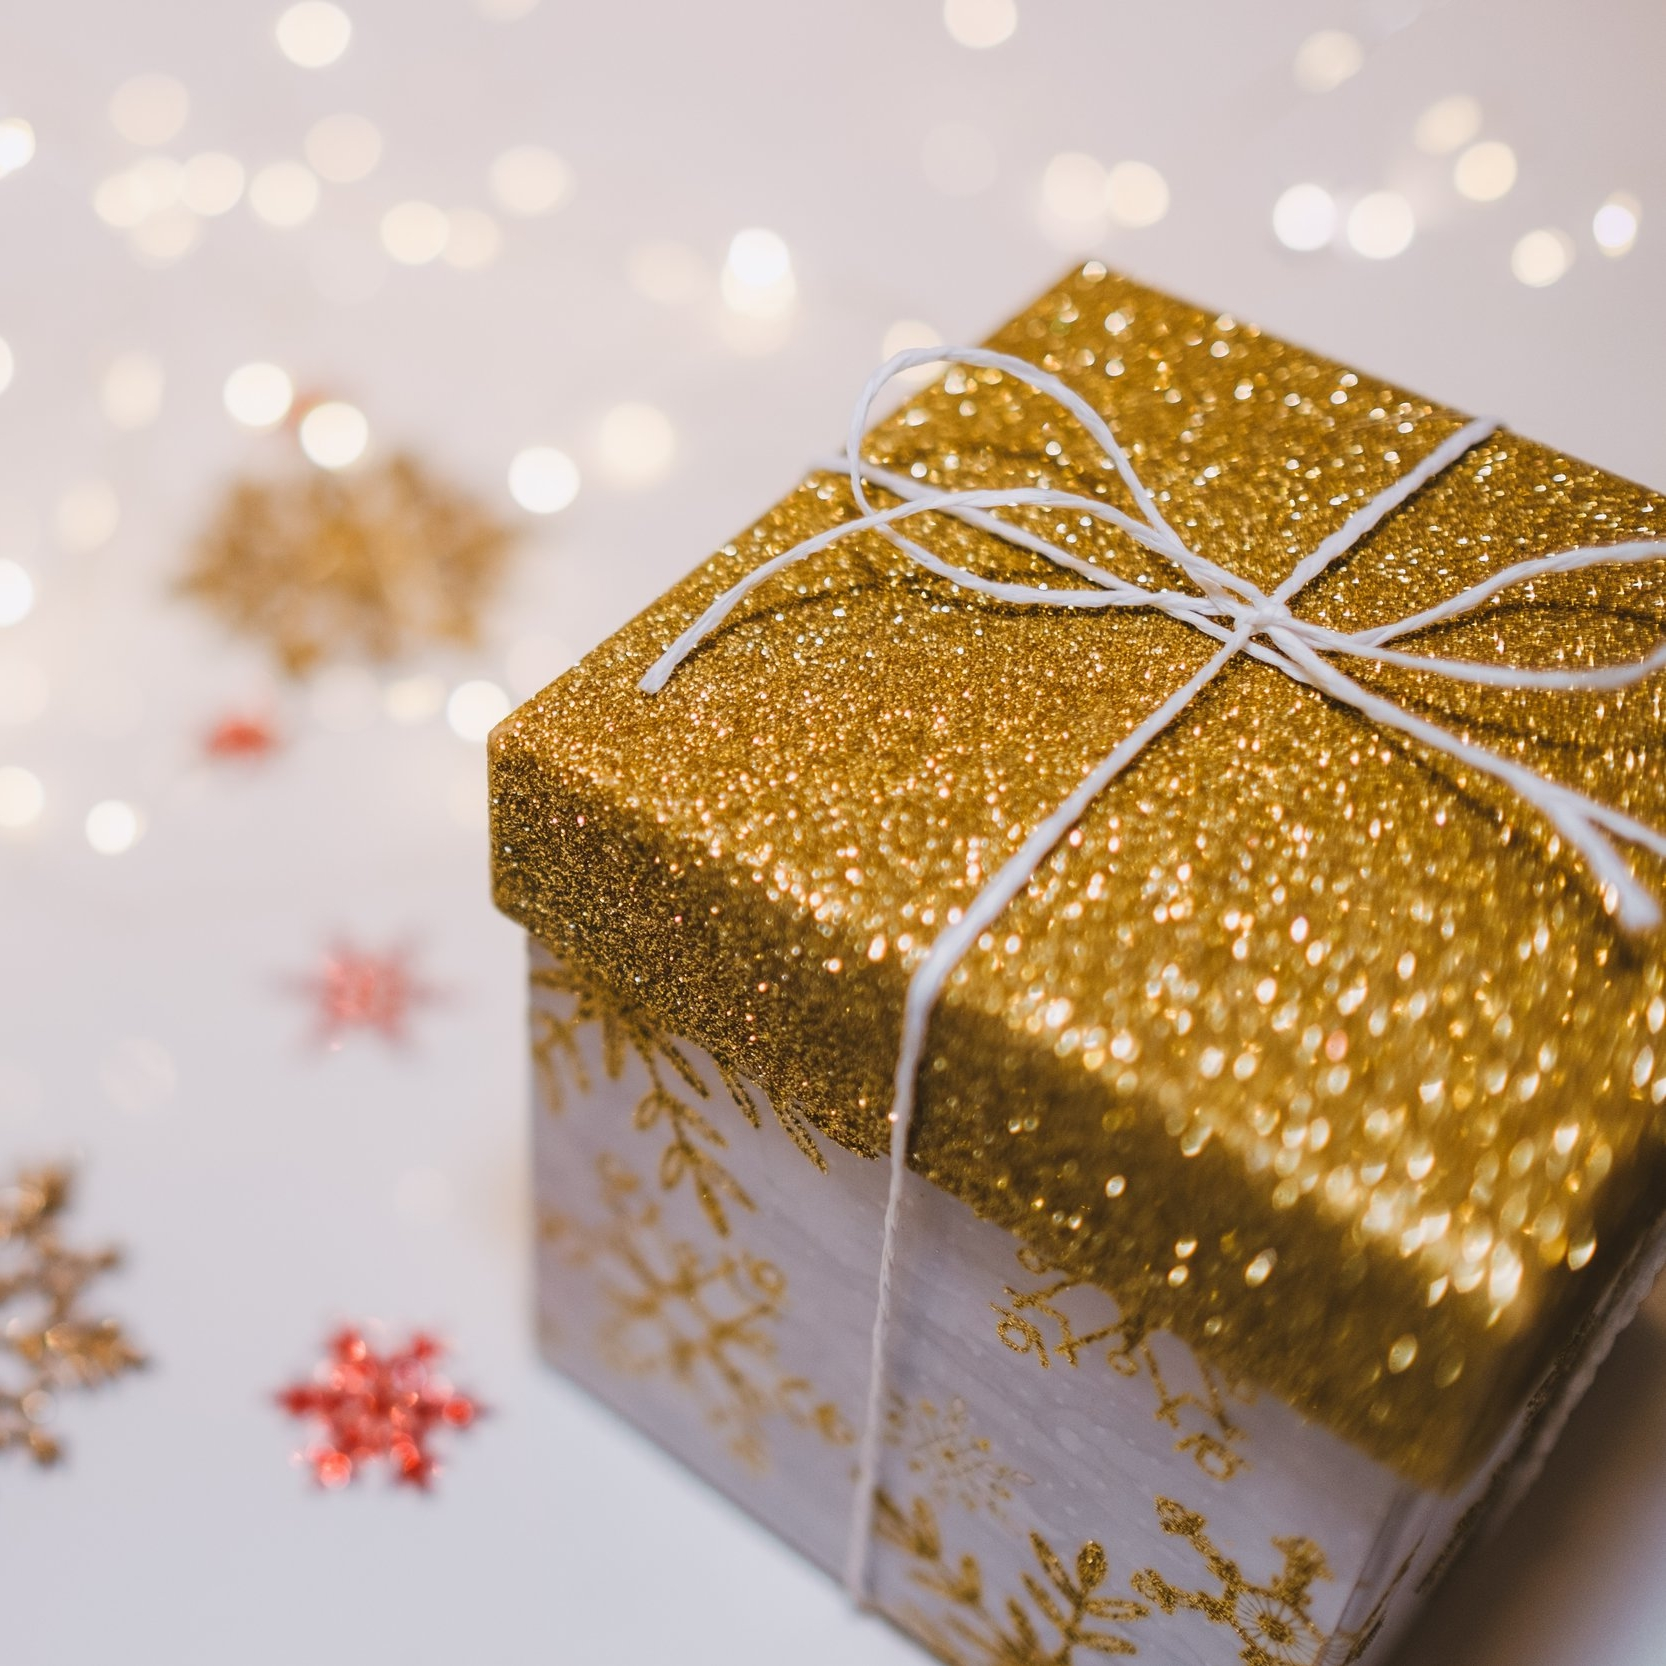 How To Holiday Shop on a Budget 🎄 - Christmas is almost here and if you don't have a gift yet, it's not too late! Here are five ways to buy the perfect gift for your loved ones without breaking the bank. Happy Holidays from PHAZE Magazine!